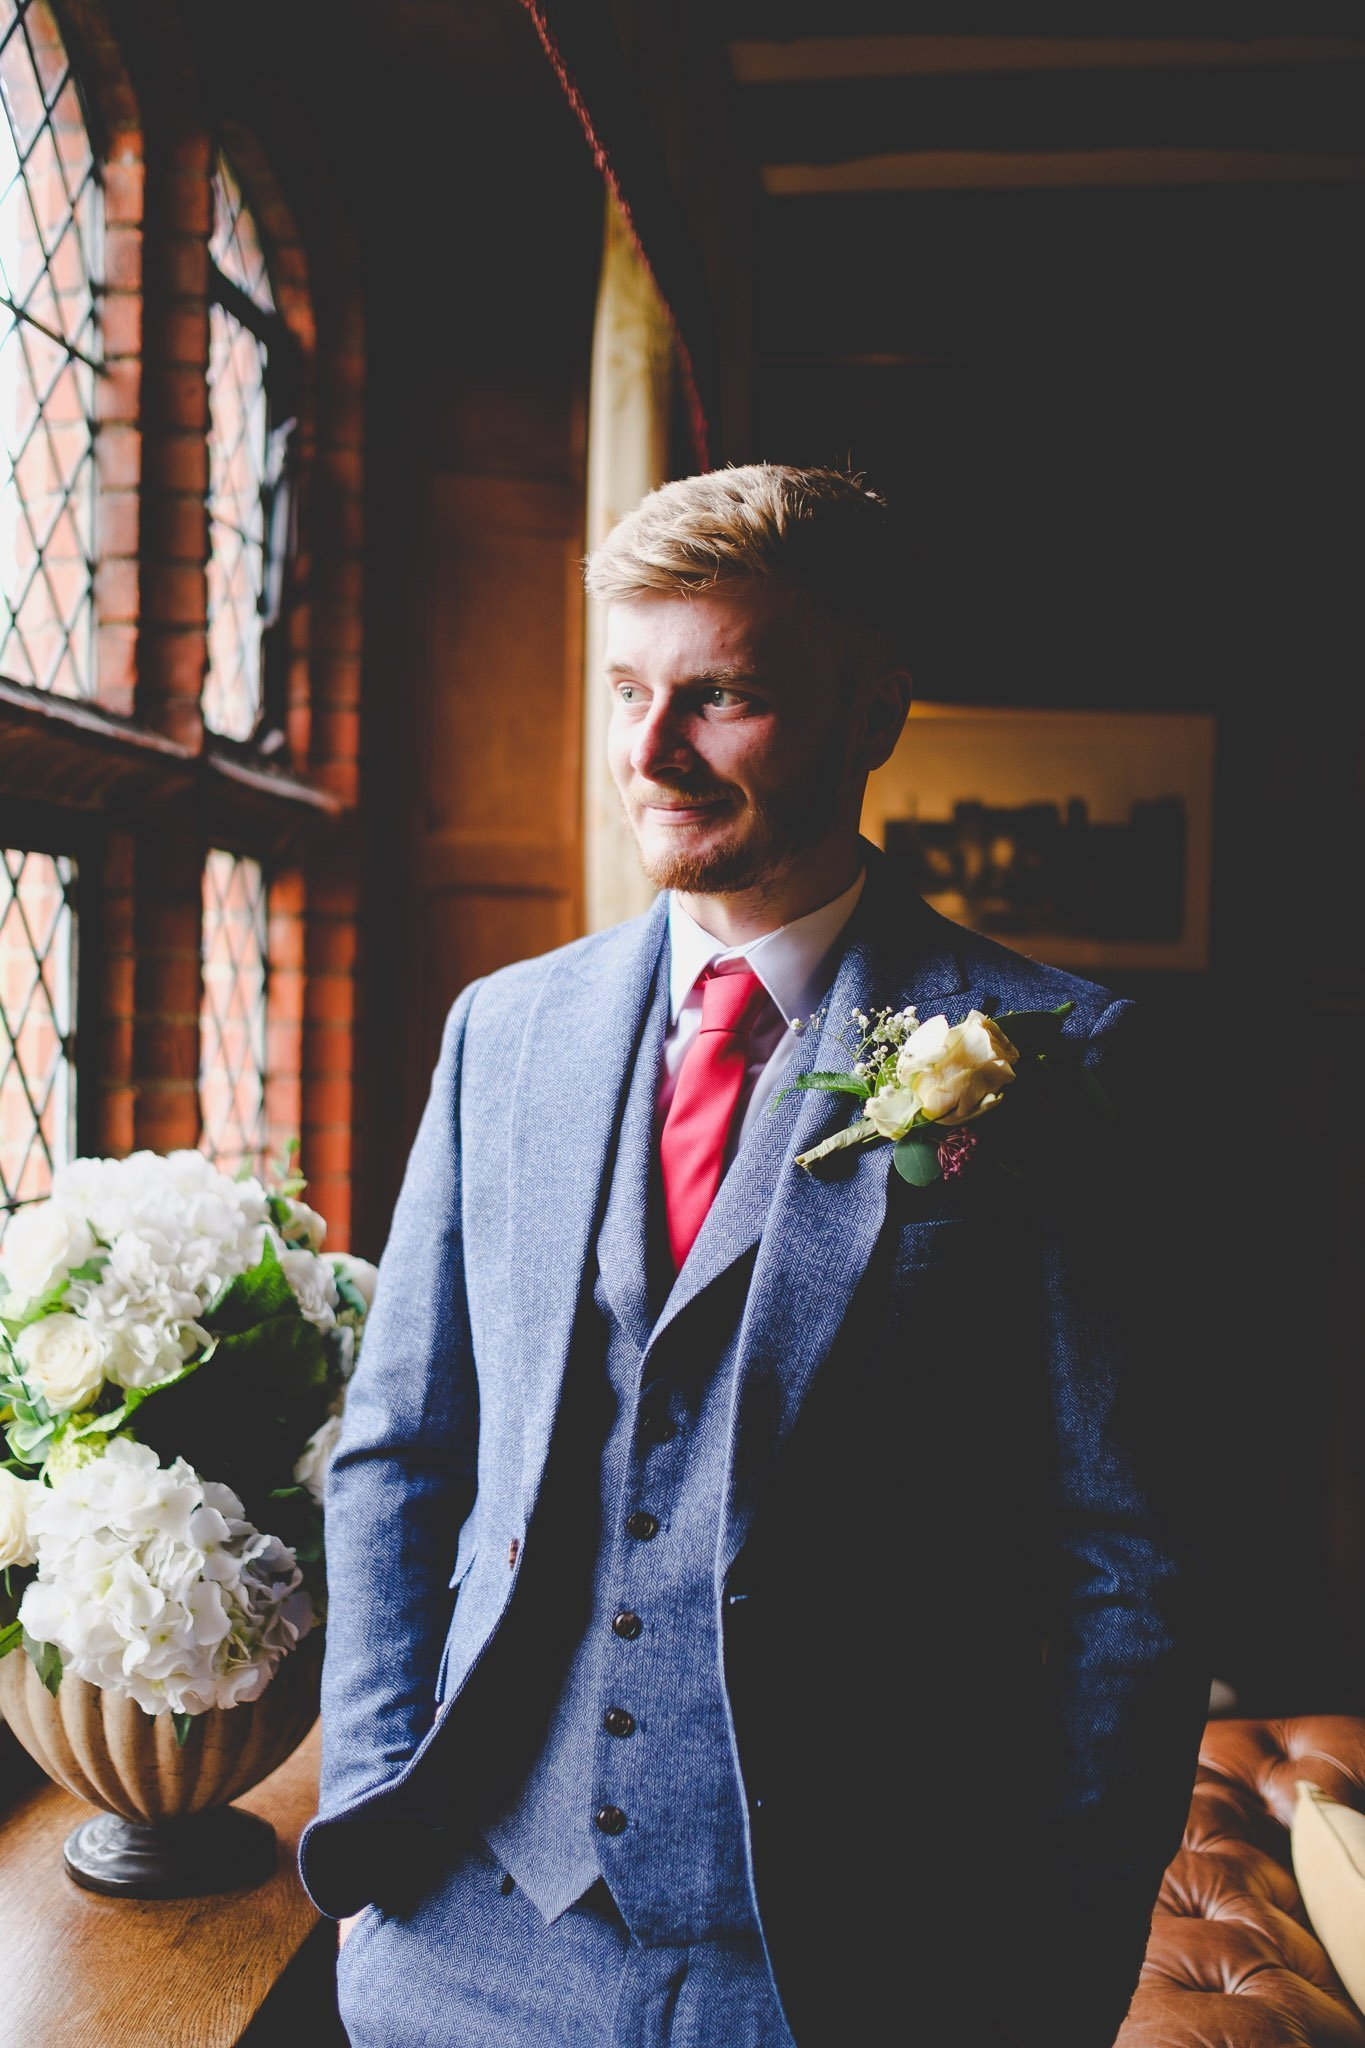 Creative portrait of a groom wearing blue wool three piece suit at Leez Priory Chelmsford wedding. Photography by thatthingyoupluck.